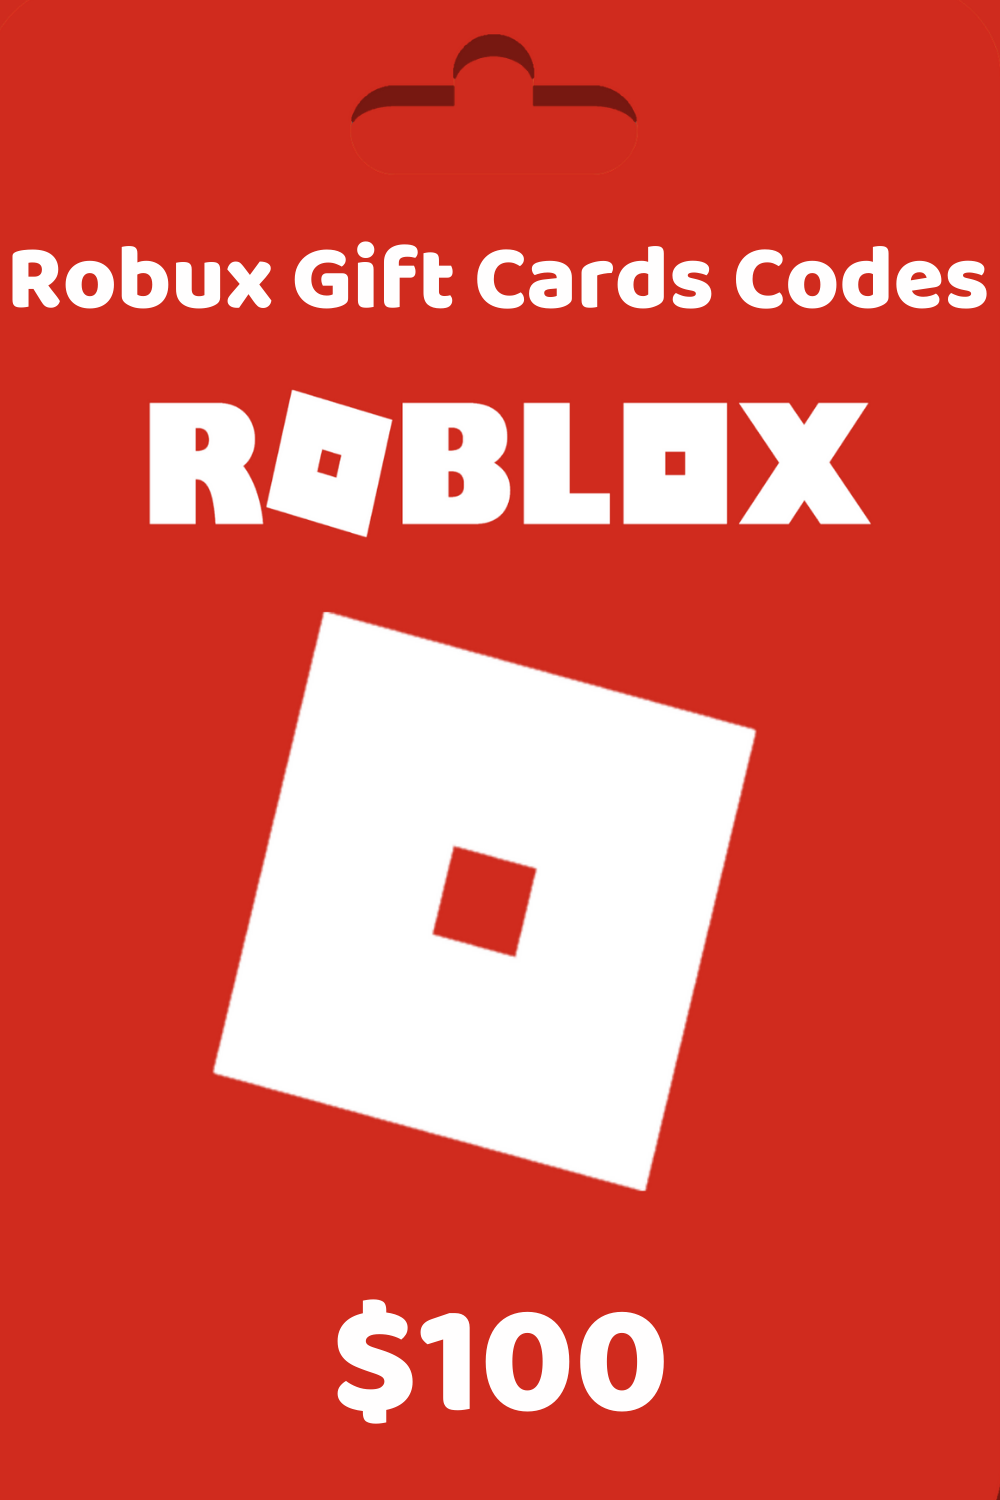 Roblox Hack 2016 Free Robux Generator In 2020 Roblox Roblox Gifts Roblox Codes